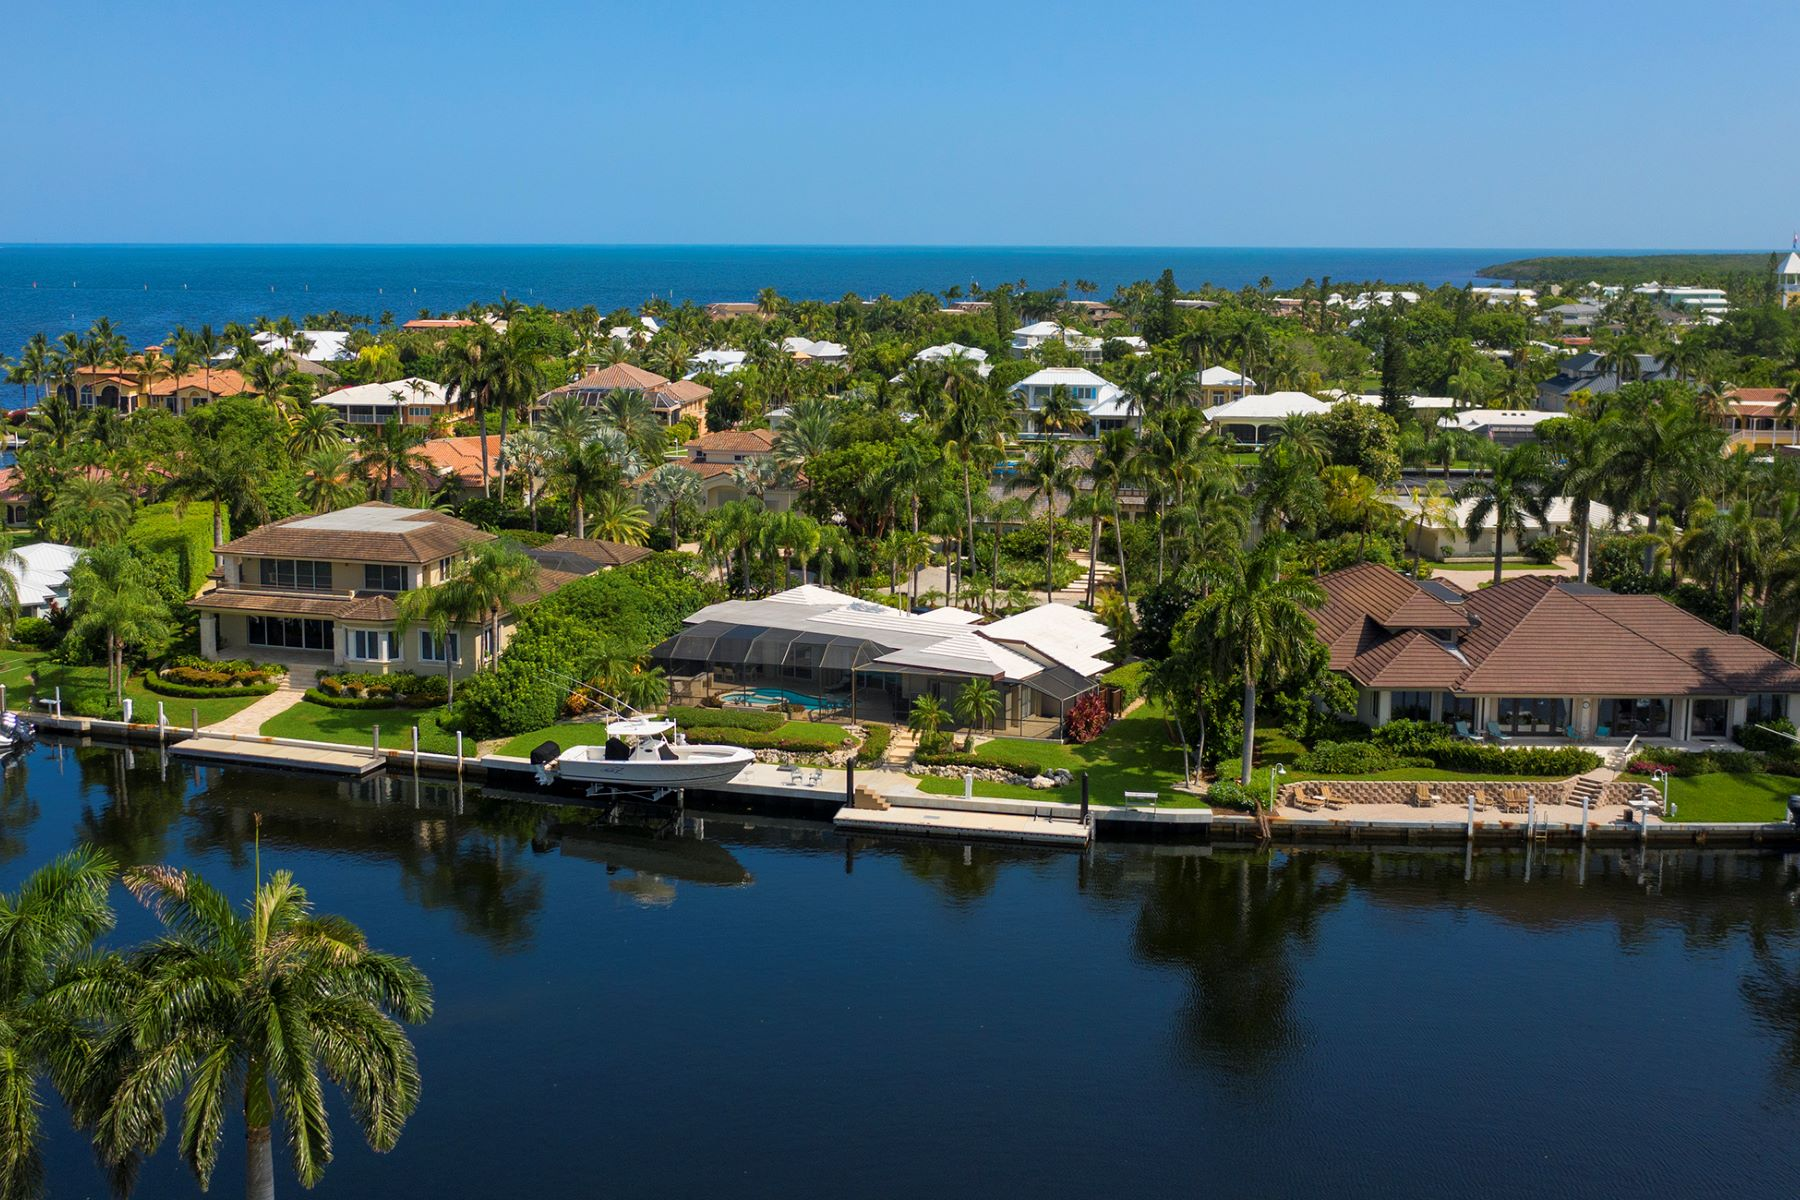 Single Family Homes for Sale at 26 Channel Cay Road, Key Largo, FL 26 Channel Cay Road Key Largo, Florida 33037 United States